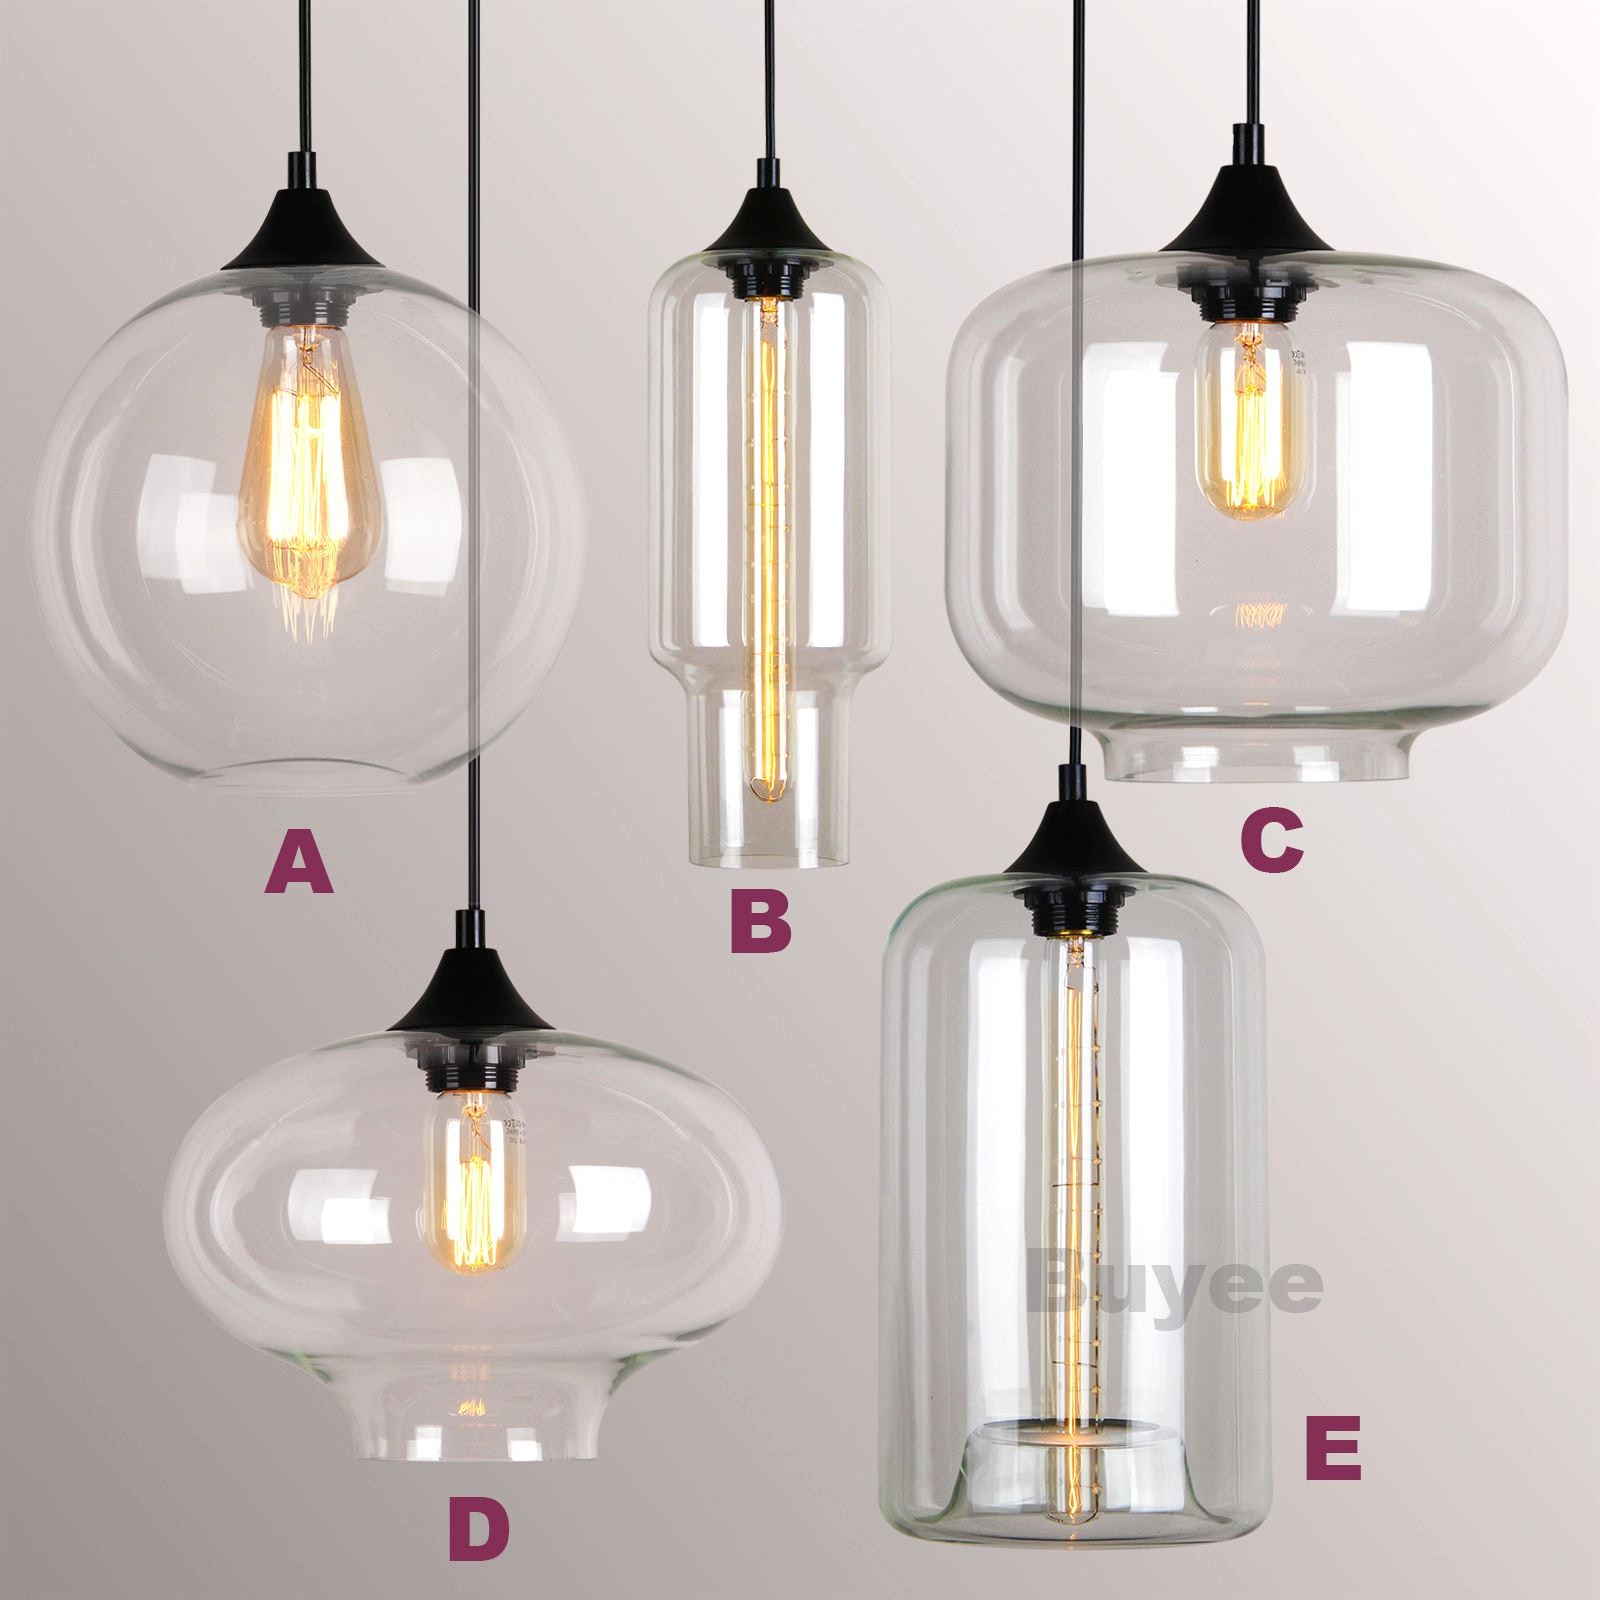 Replacement Pendant Glass Lamp Shades | Lamp Shades Glass Replacement | Glass Chandelier Shades